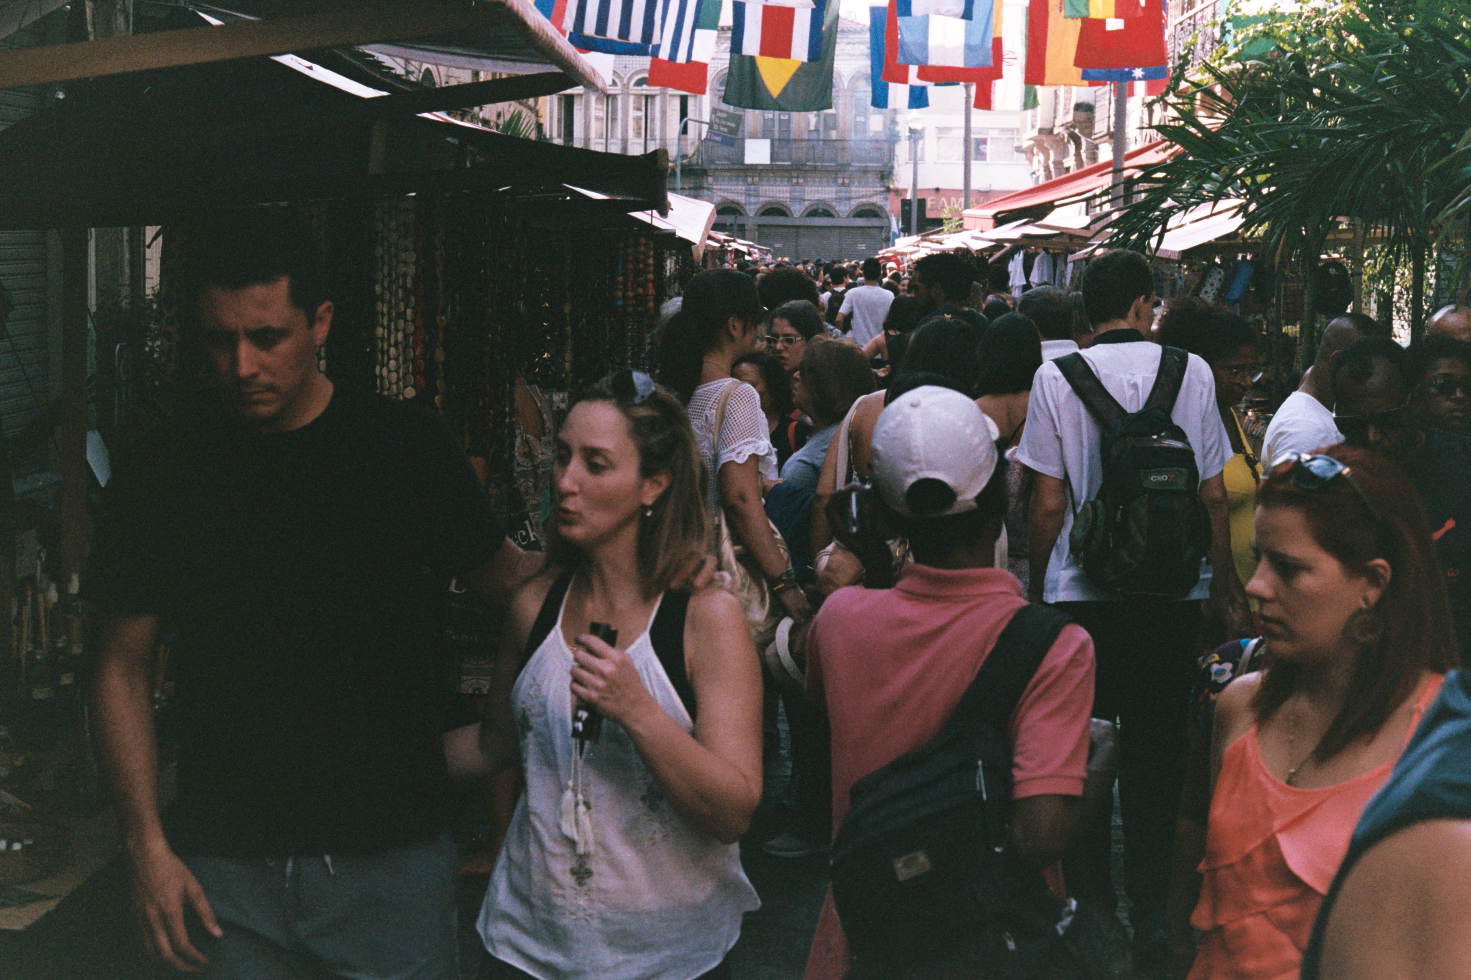 The largest market in Rio